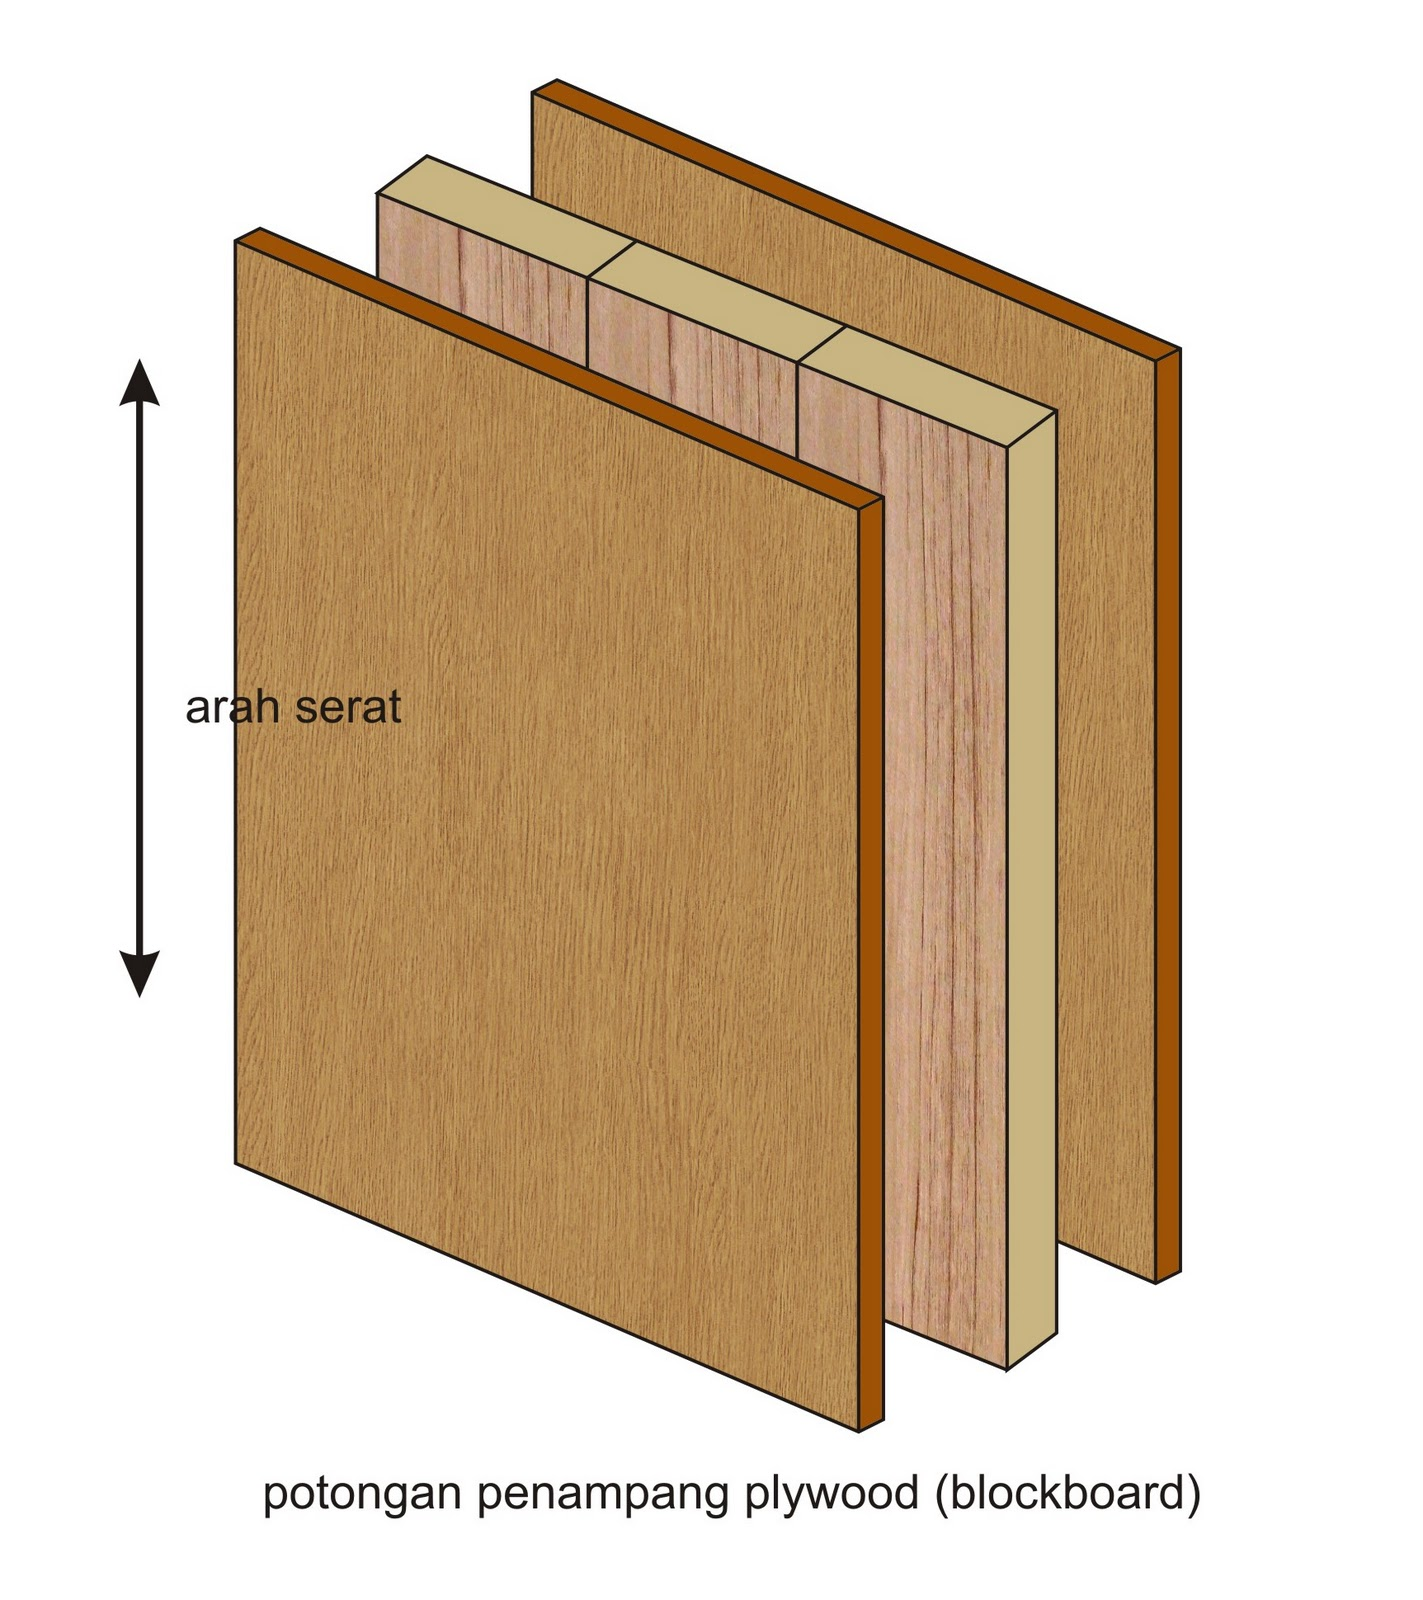 Ukuran Blockboard Membuat Furniture Part 1 Sisi Lain Desainer